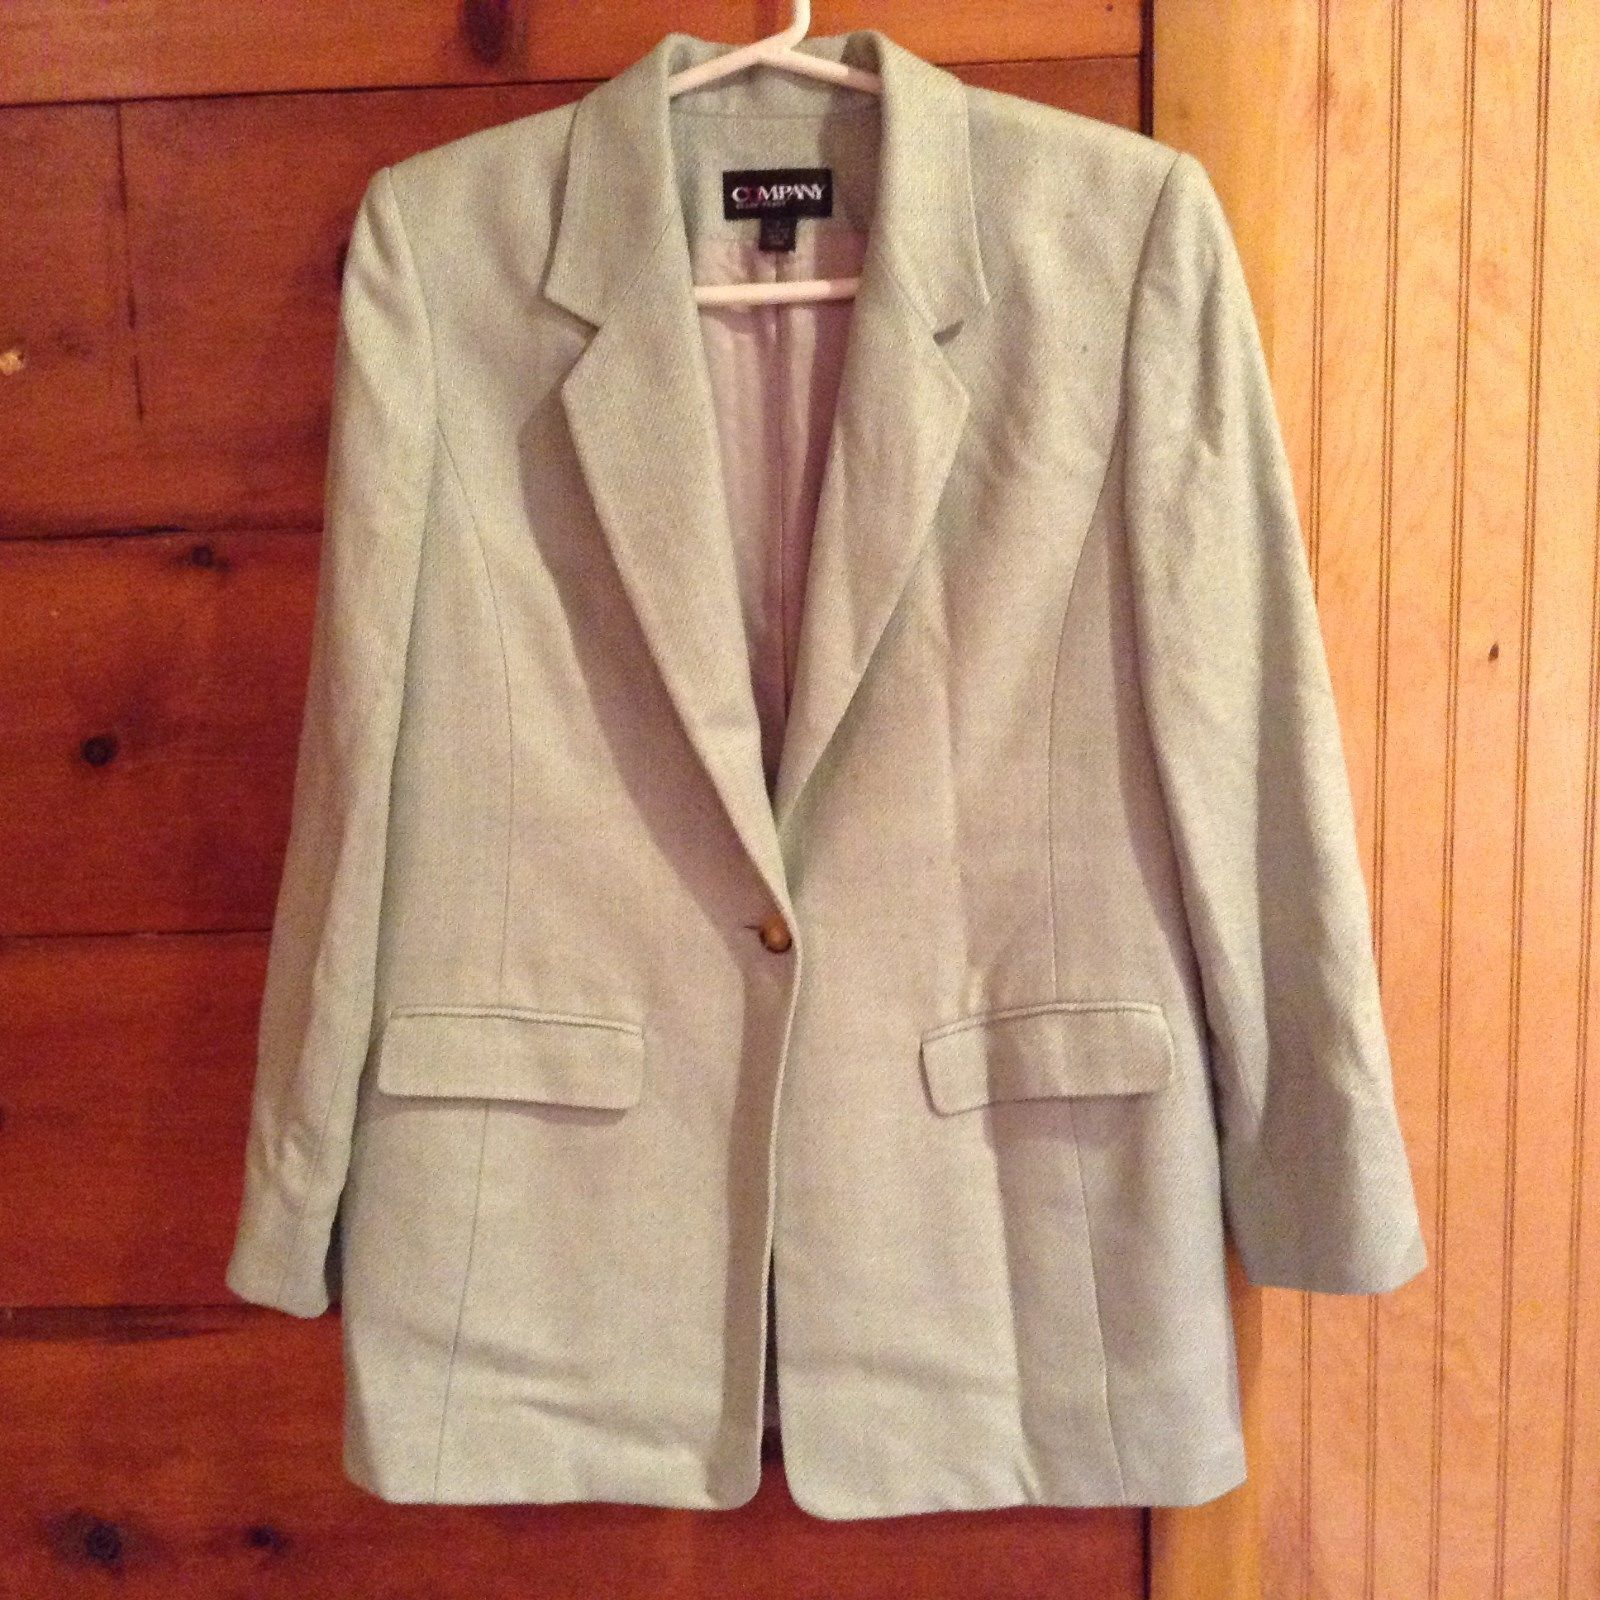 Company Ellen Tracy Light Green Size 4 Blazer Shoulder Pads 100 Percent Silk